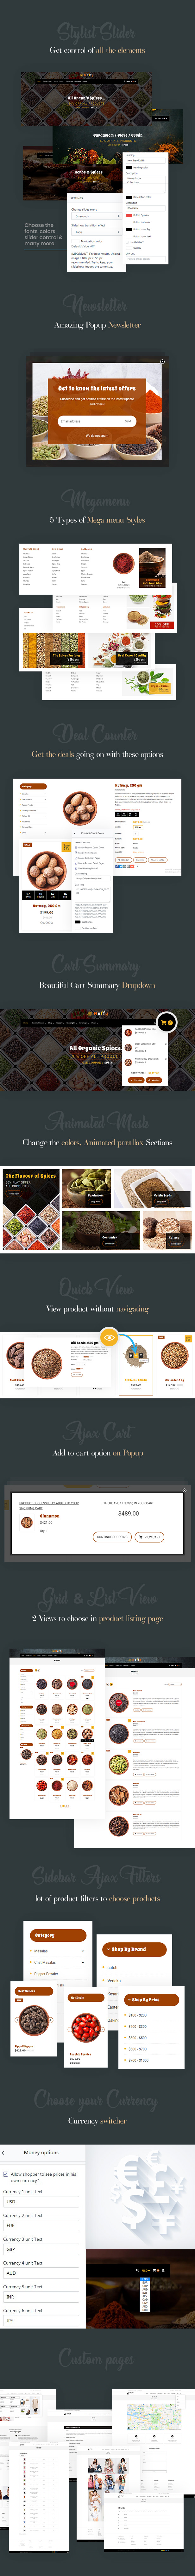 Waffy | Spices, Dry Fruits and Nuts Organic shop Shopify Theme - 3